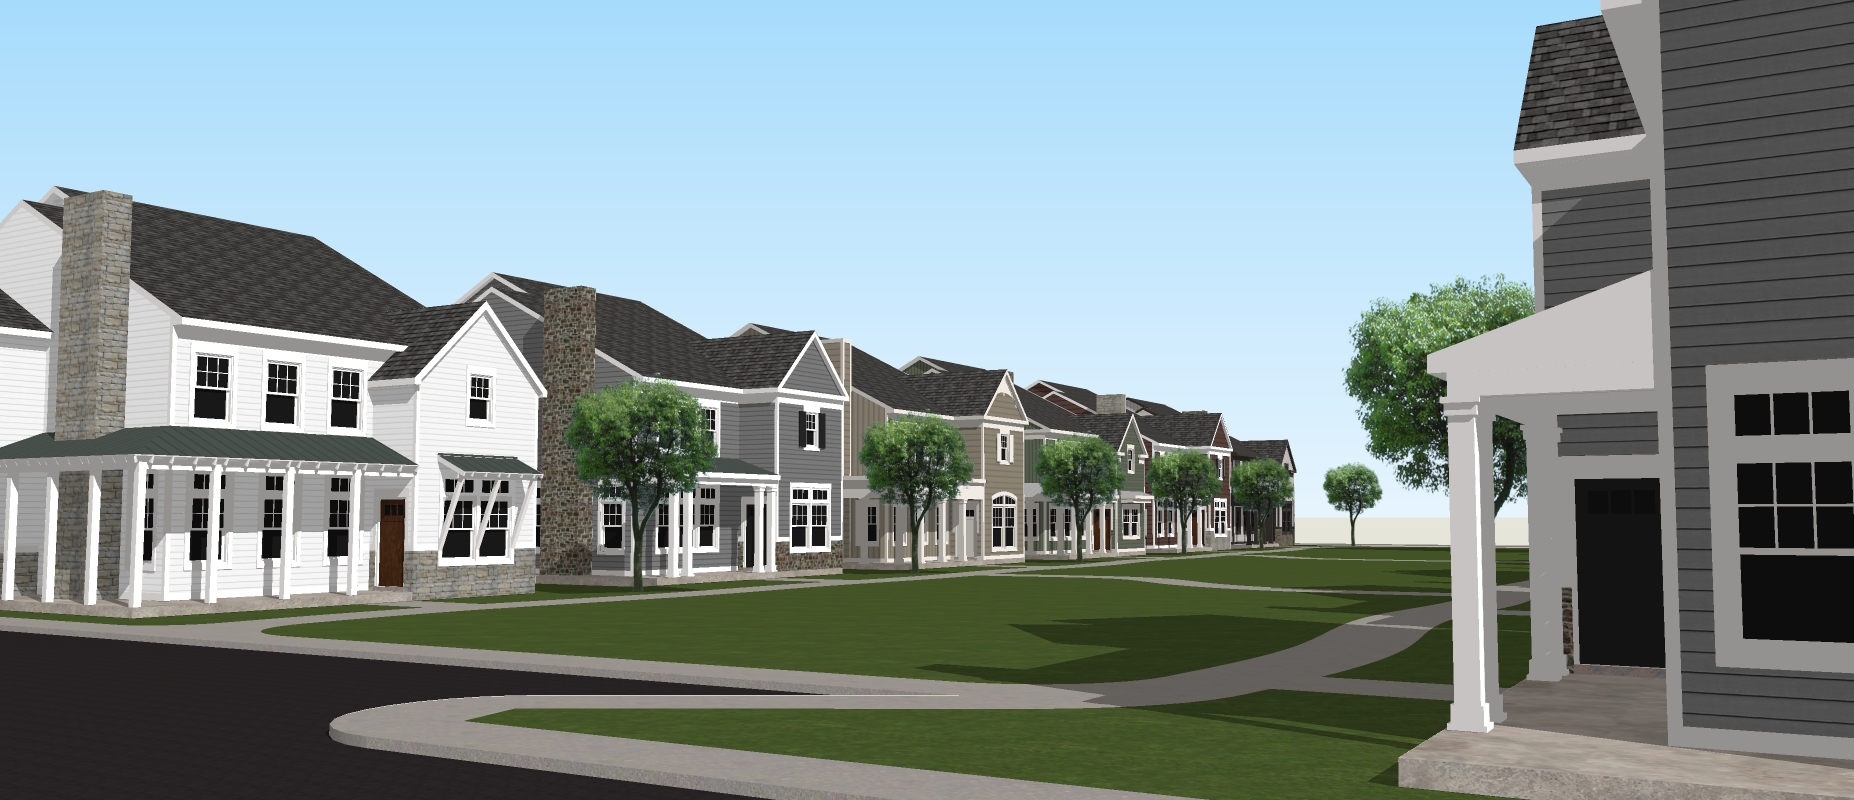 Real Estate Development Services : Taylormade development real estate services